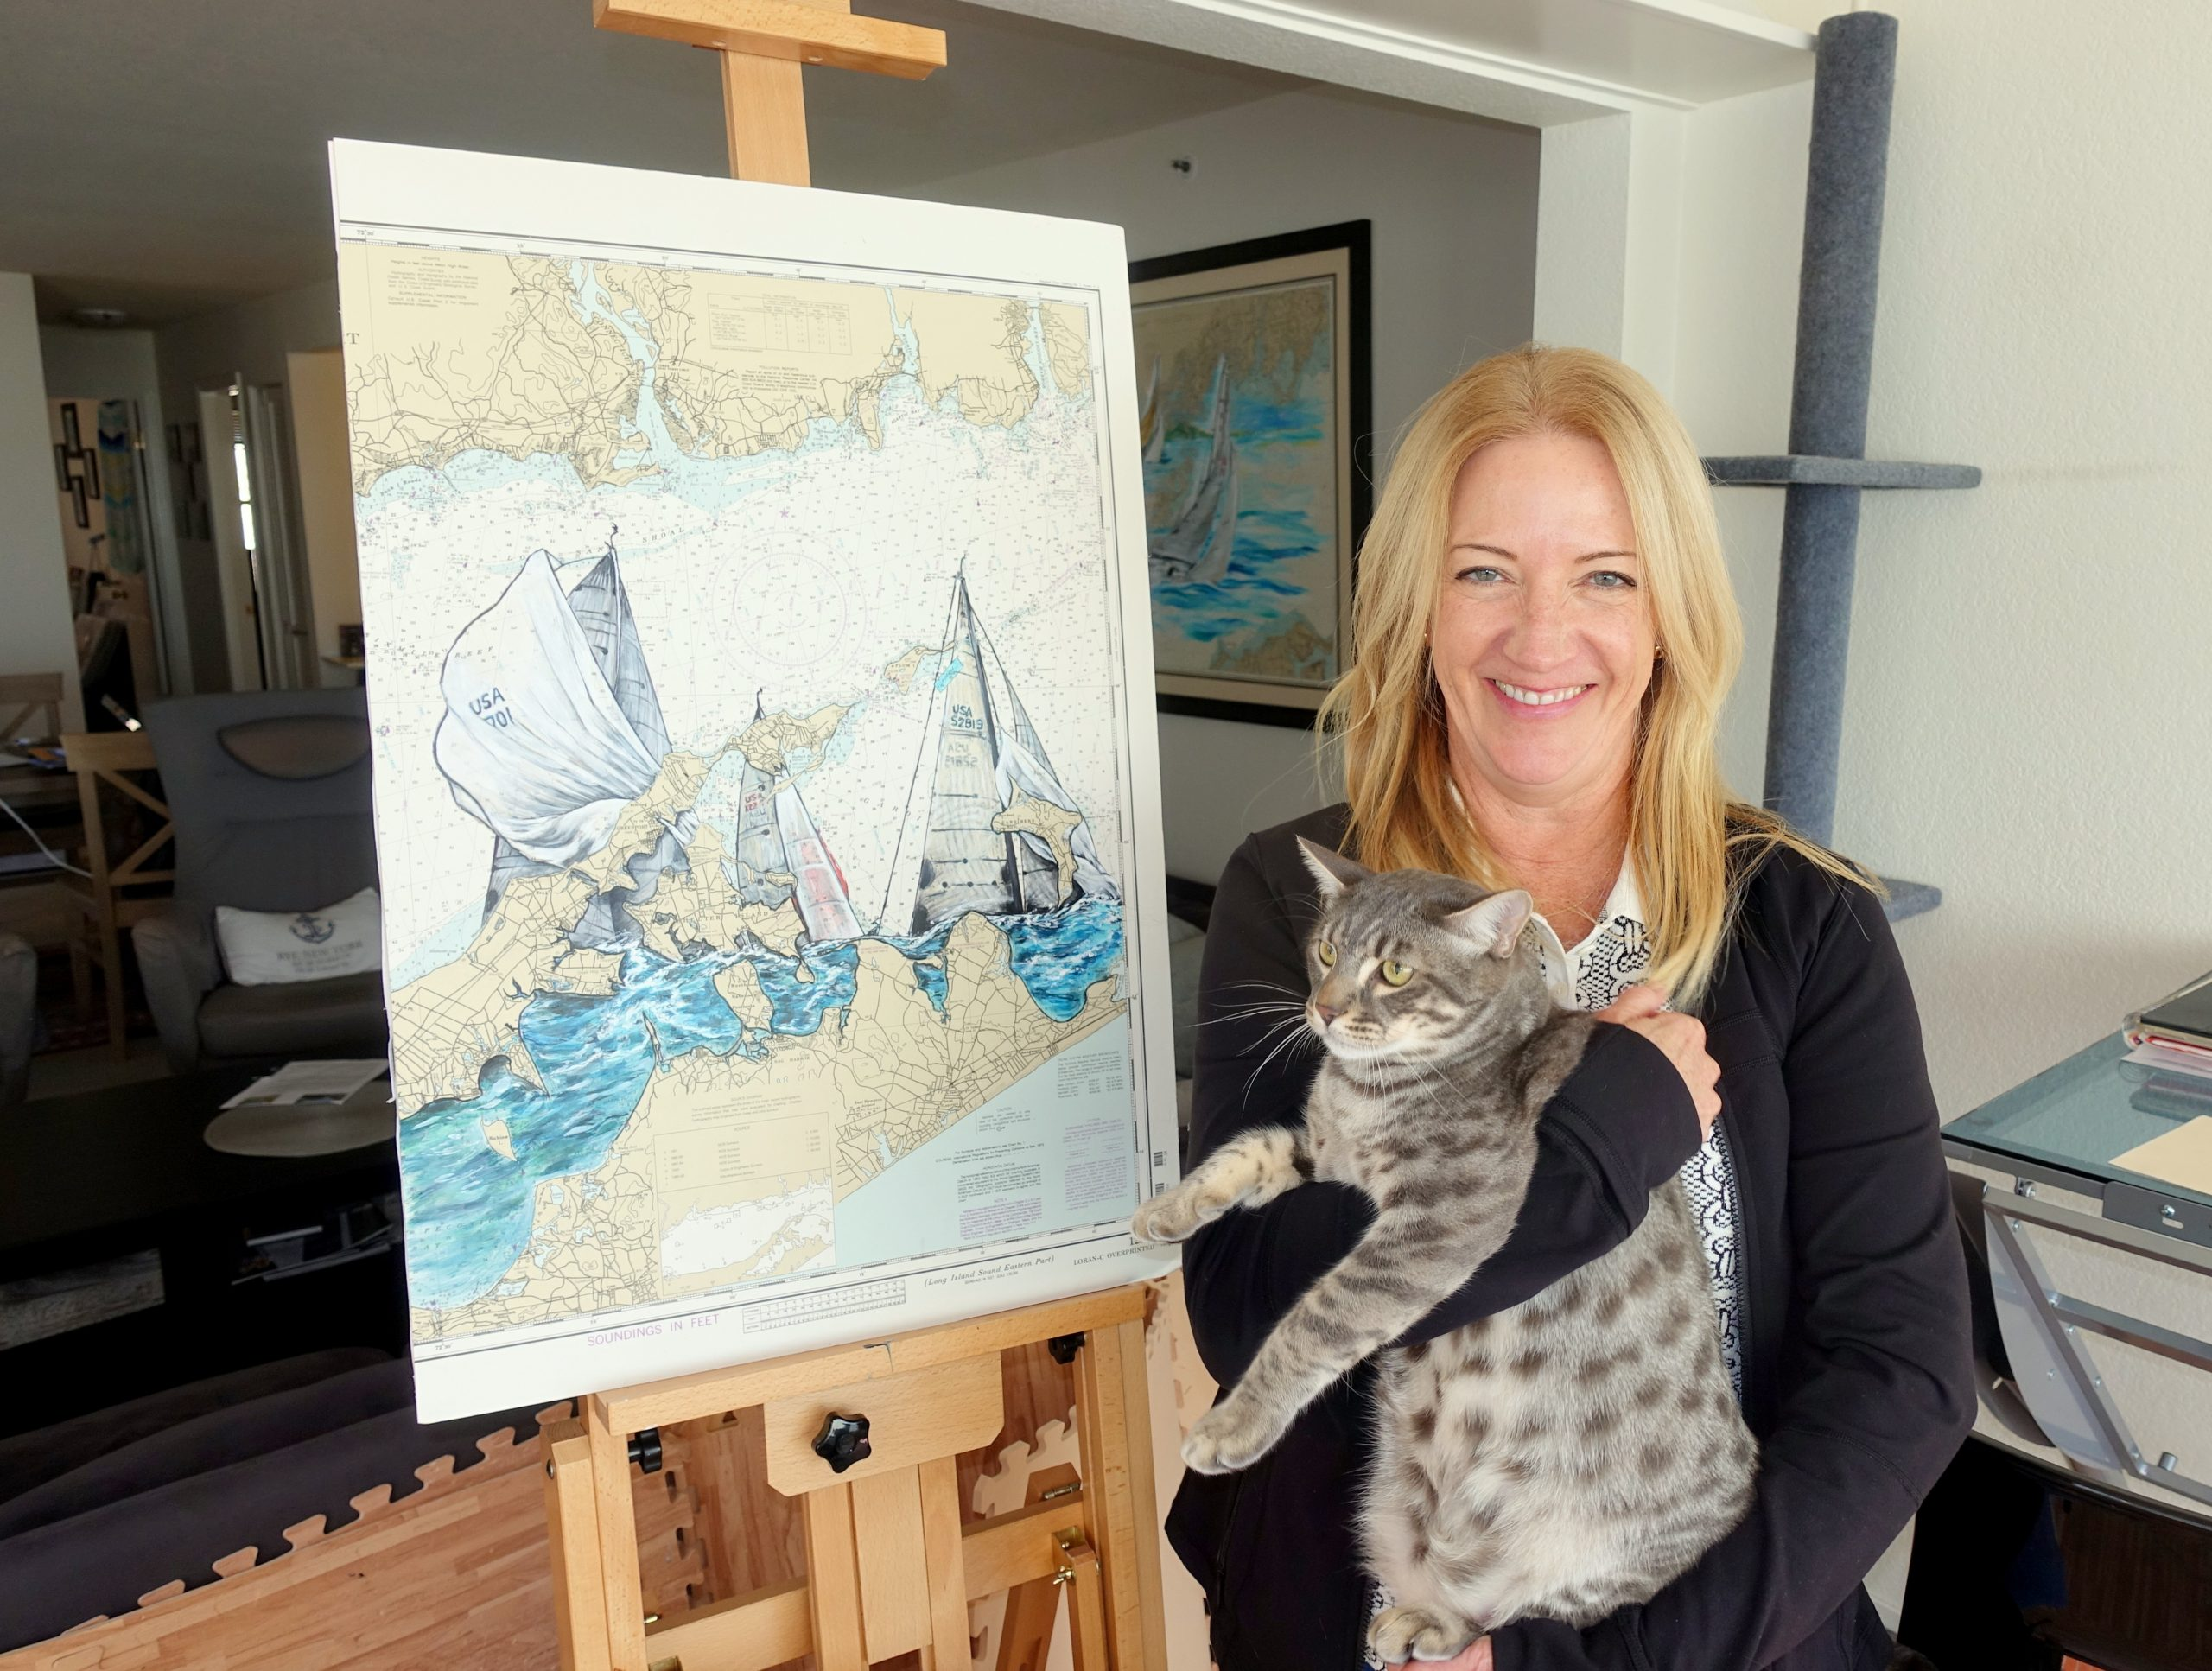 Denise Kramer stands by her painting, holding her cat.